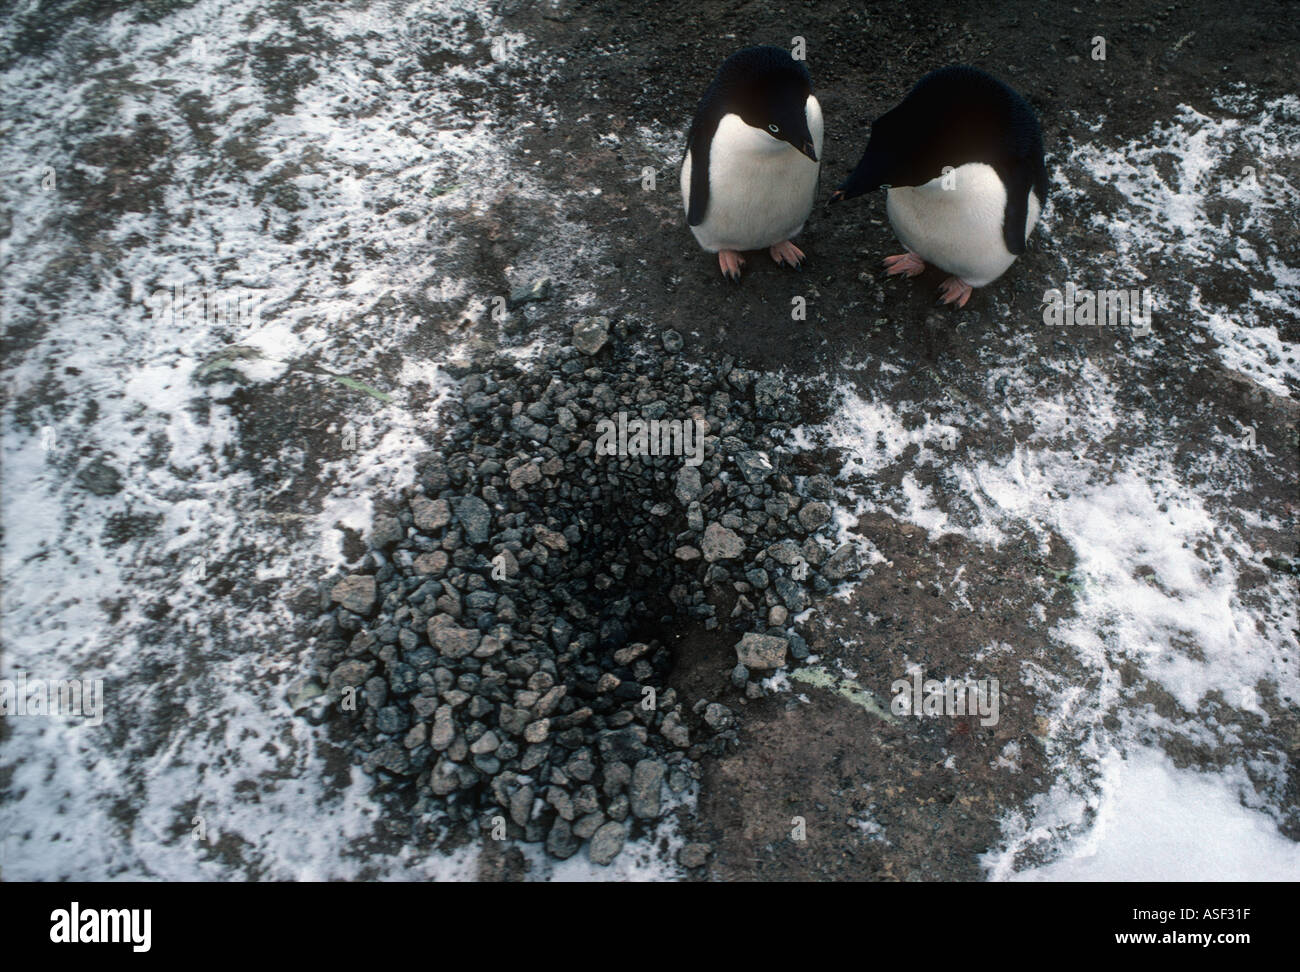 Adelie penguin Pygoscelis adeliae Pair standing beside nest of stones View from above Cape Royds Ross Island Antarctica - Stock Image